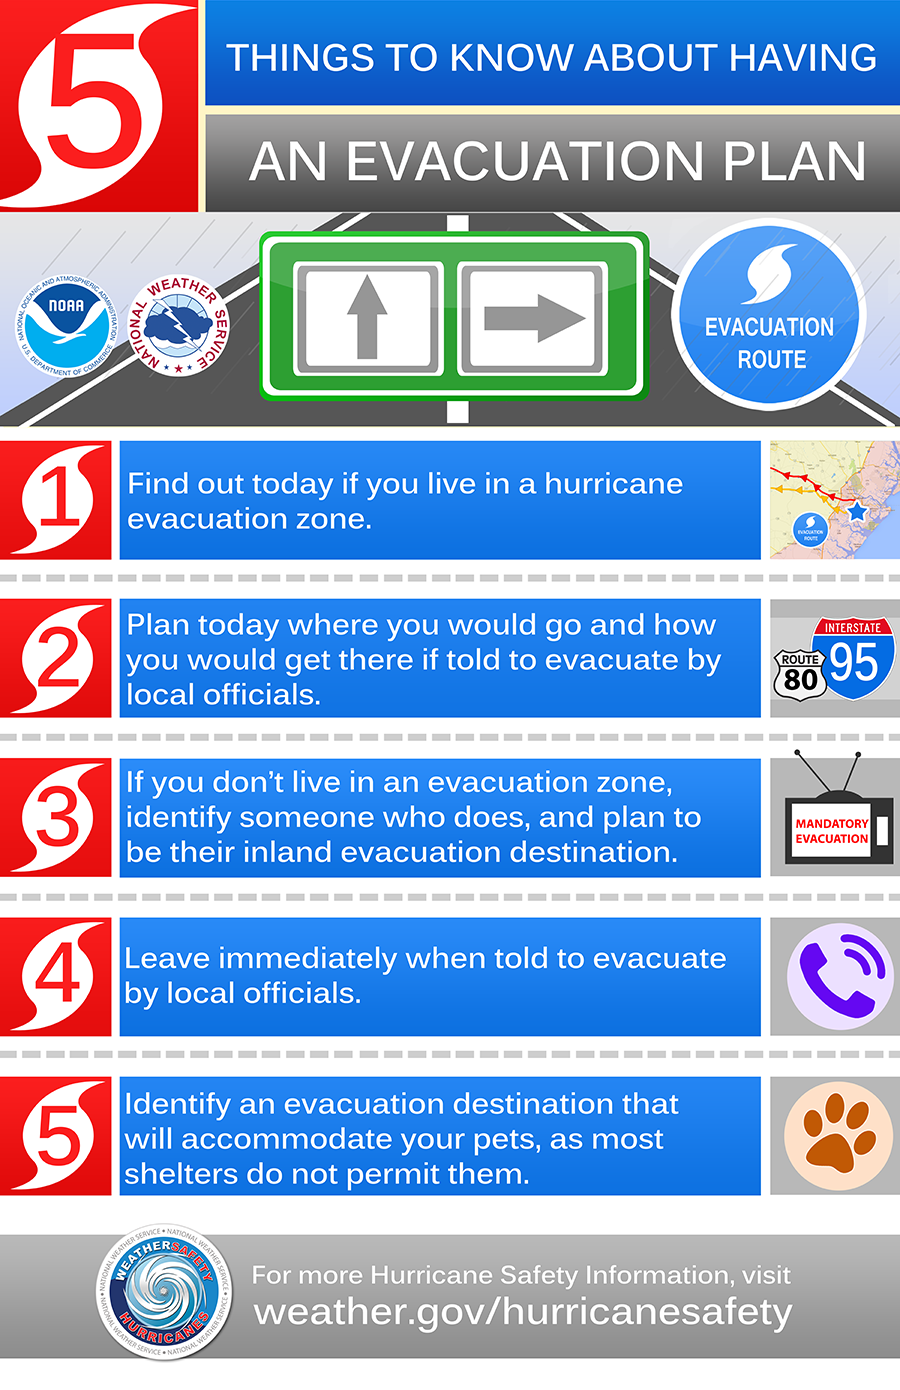 Things to know about having an evacuation plan